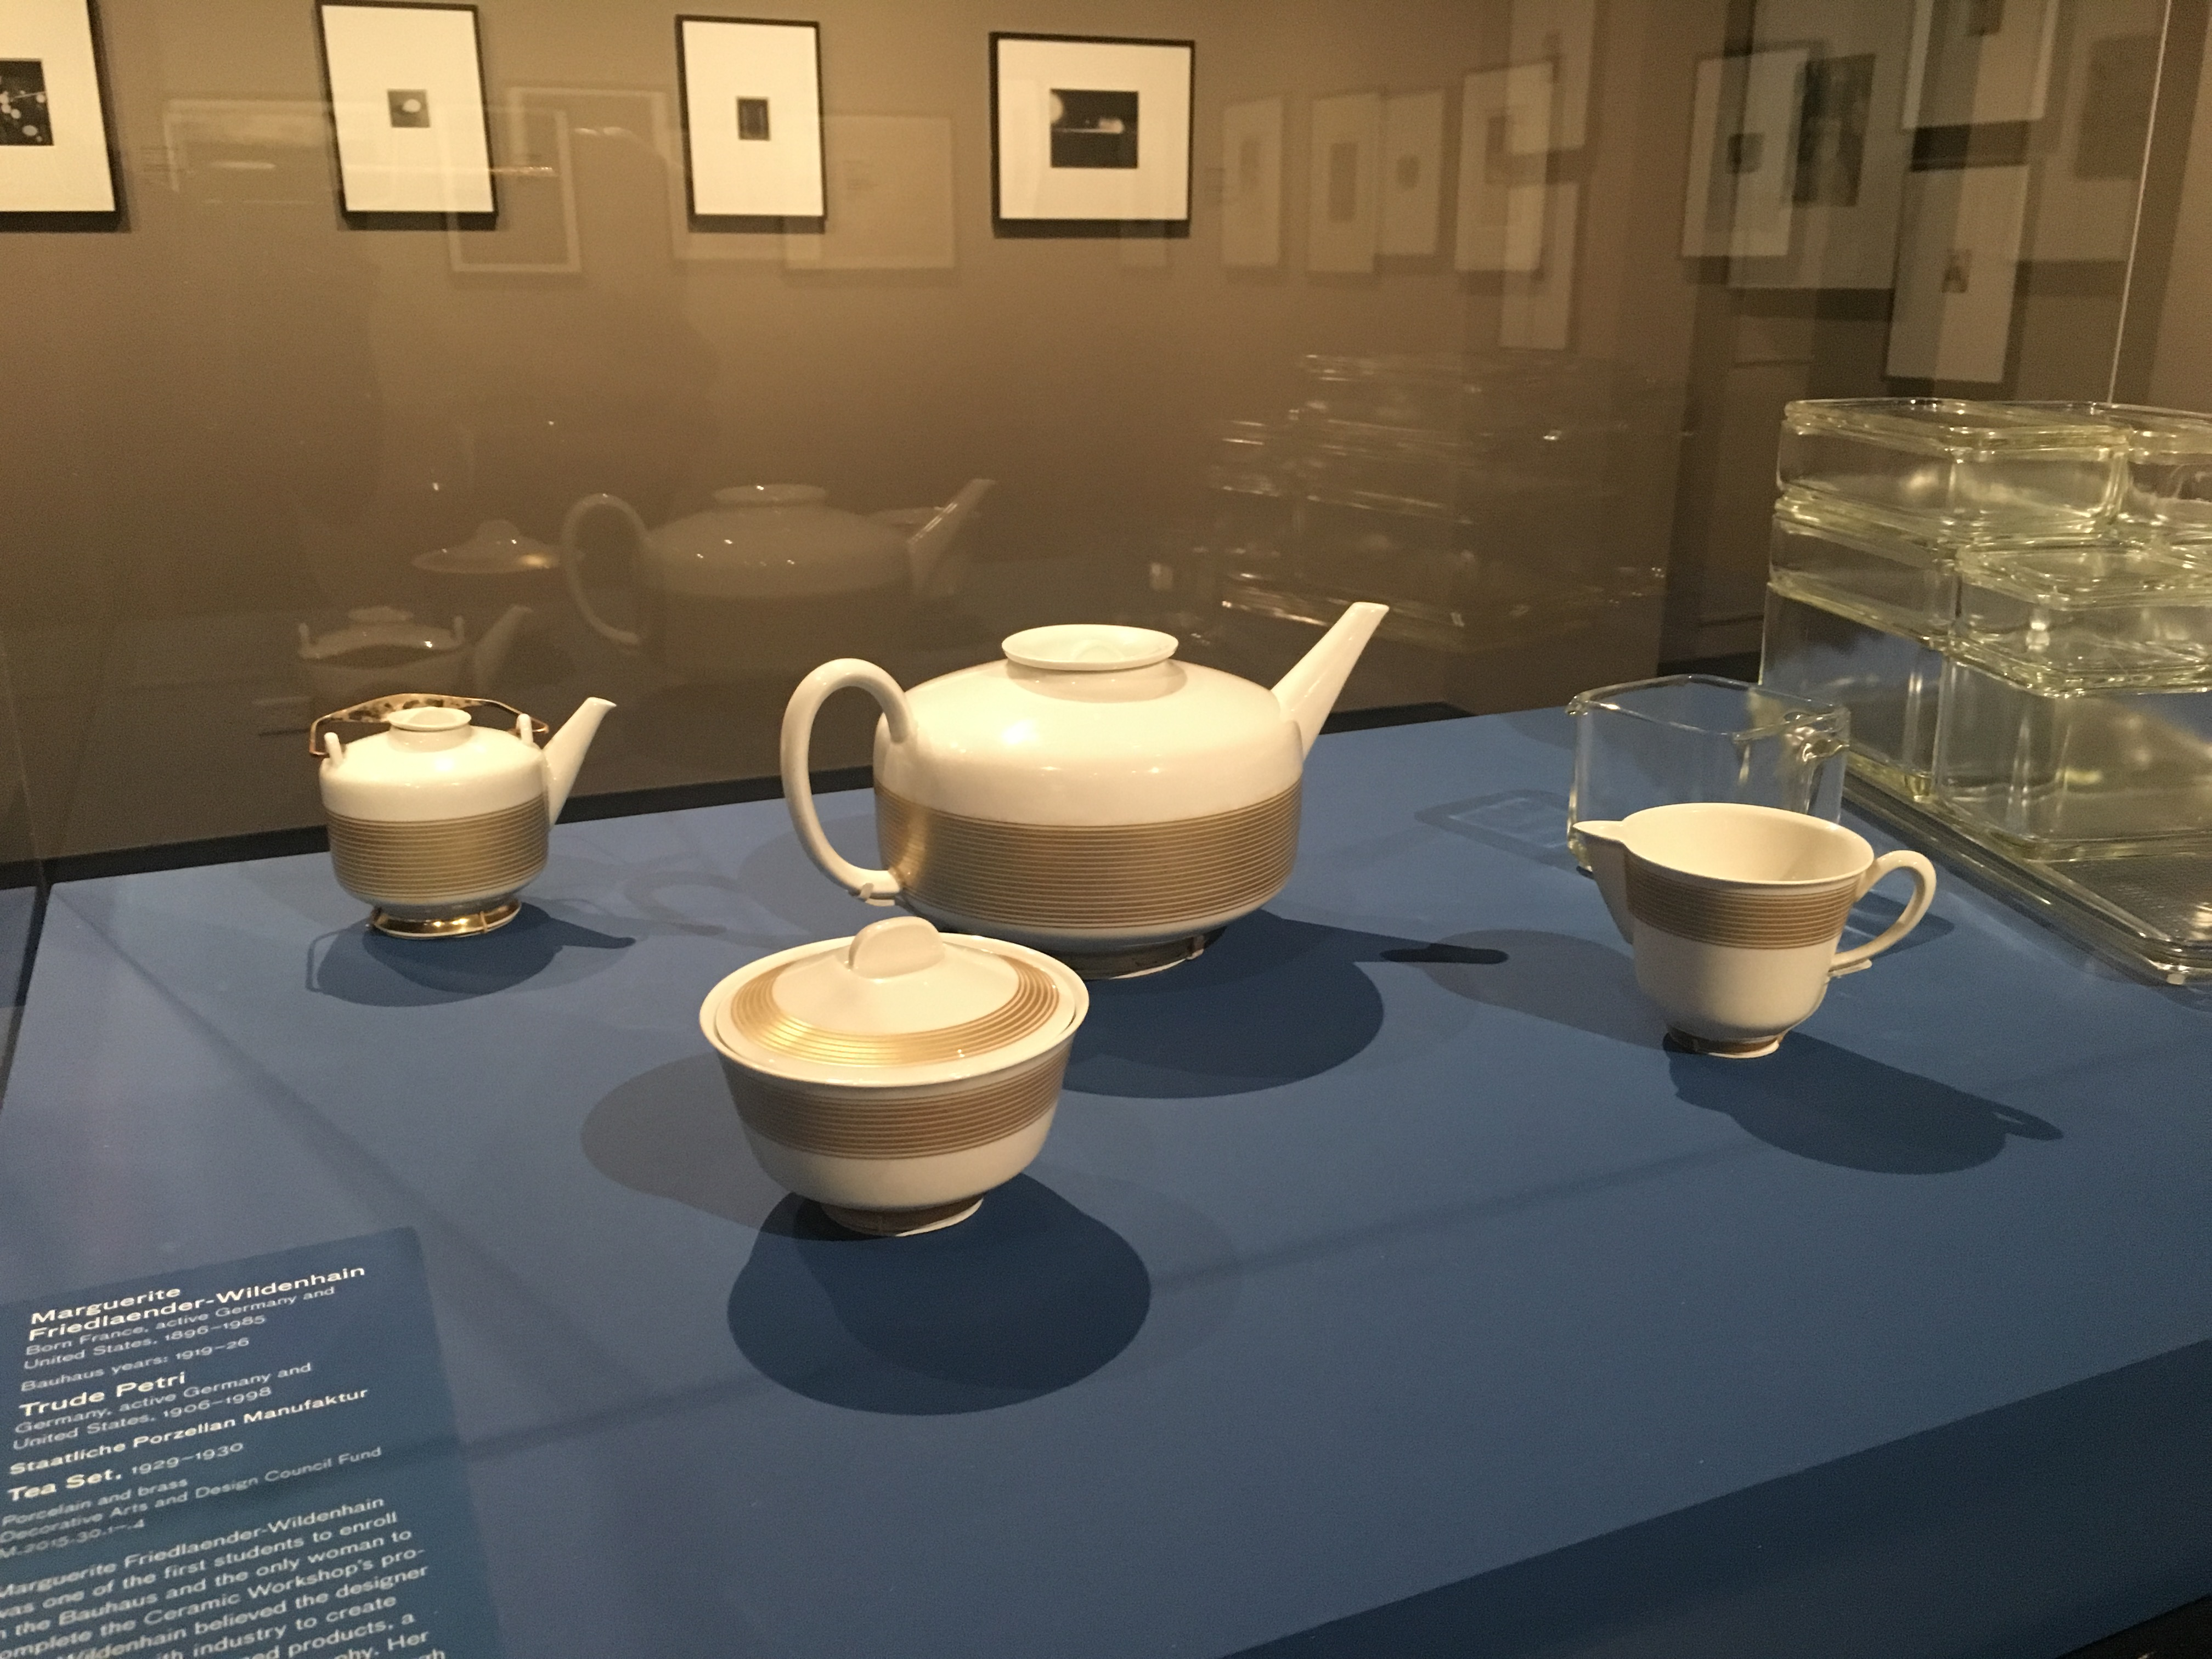 Marguerite Wildenhain, form designer and Trude Petri, decoration designer, Tea set, 1929–30, installation view, The Bauhaus at 100: Modern Legacies, Los Angeles County Museum of Art, February 16–June 2, 2019, Decorative Arts and Design Council Fund